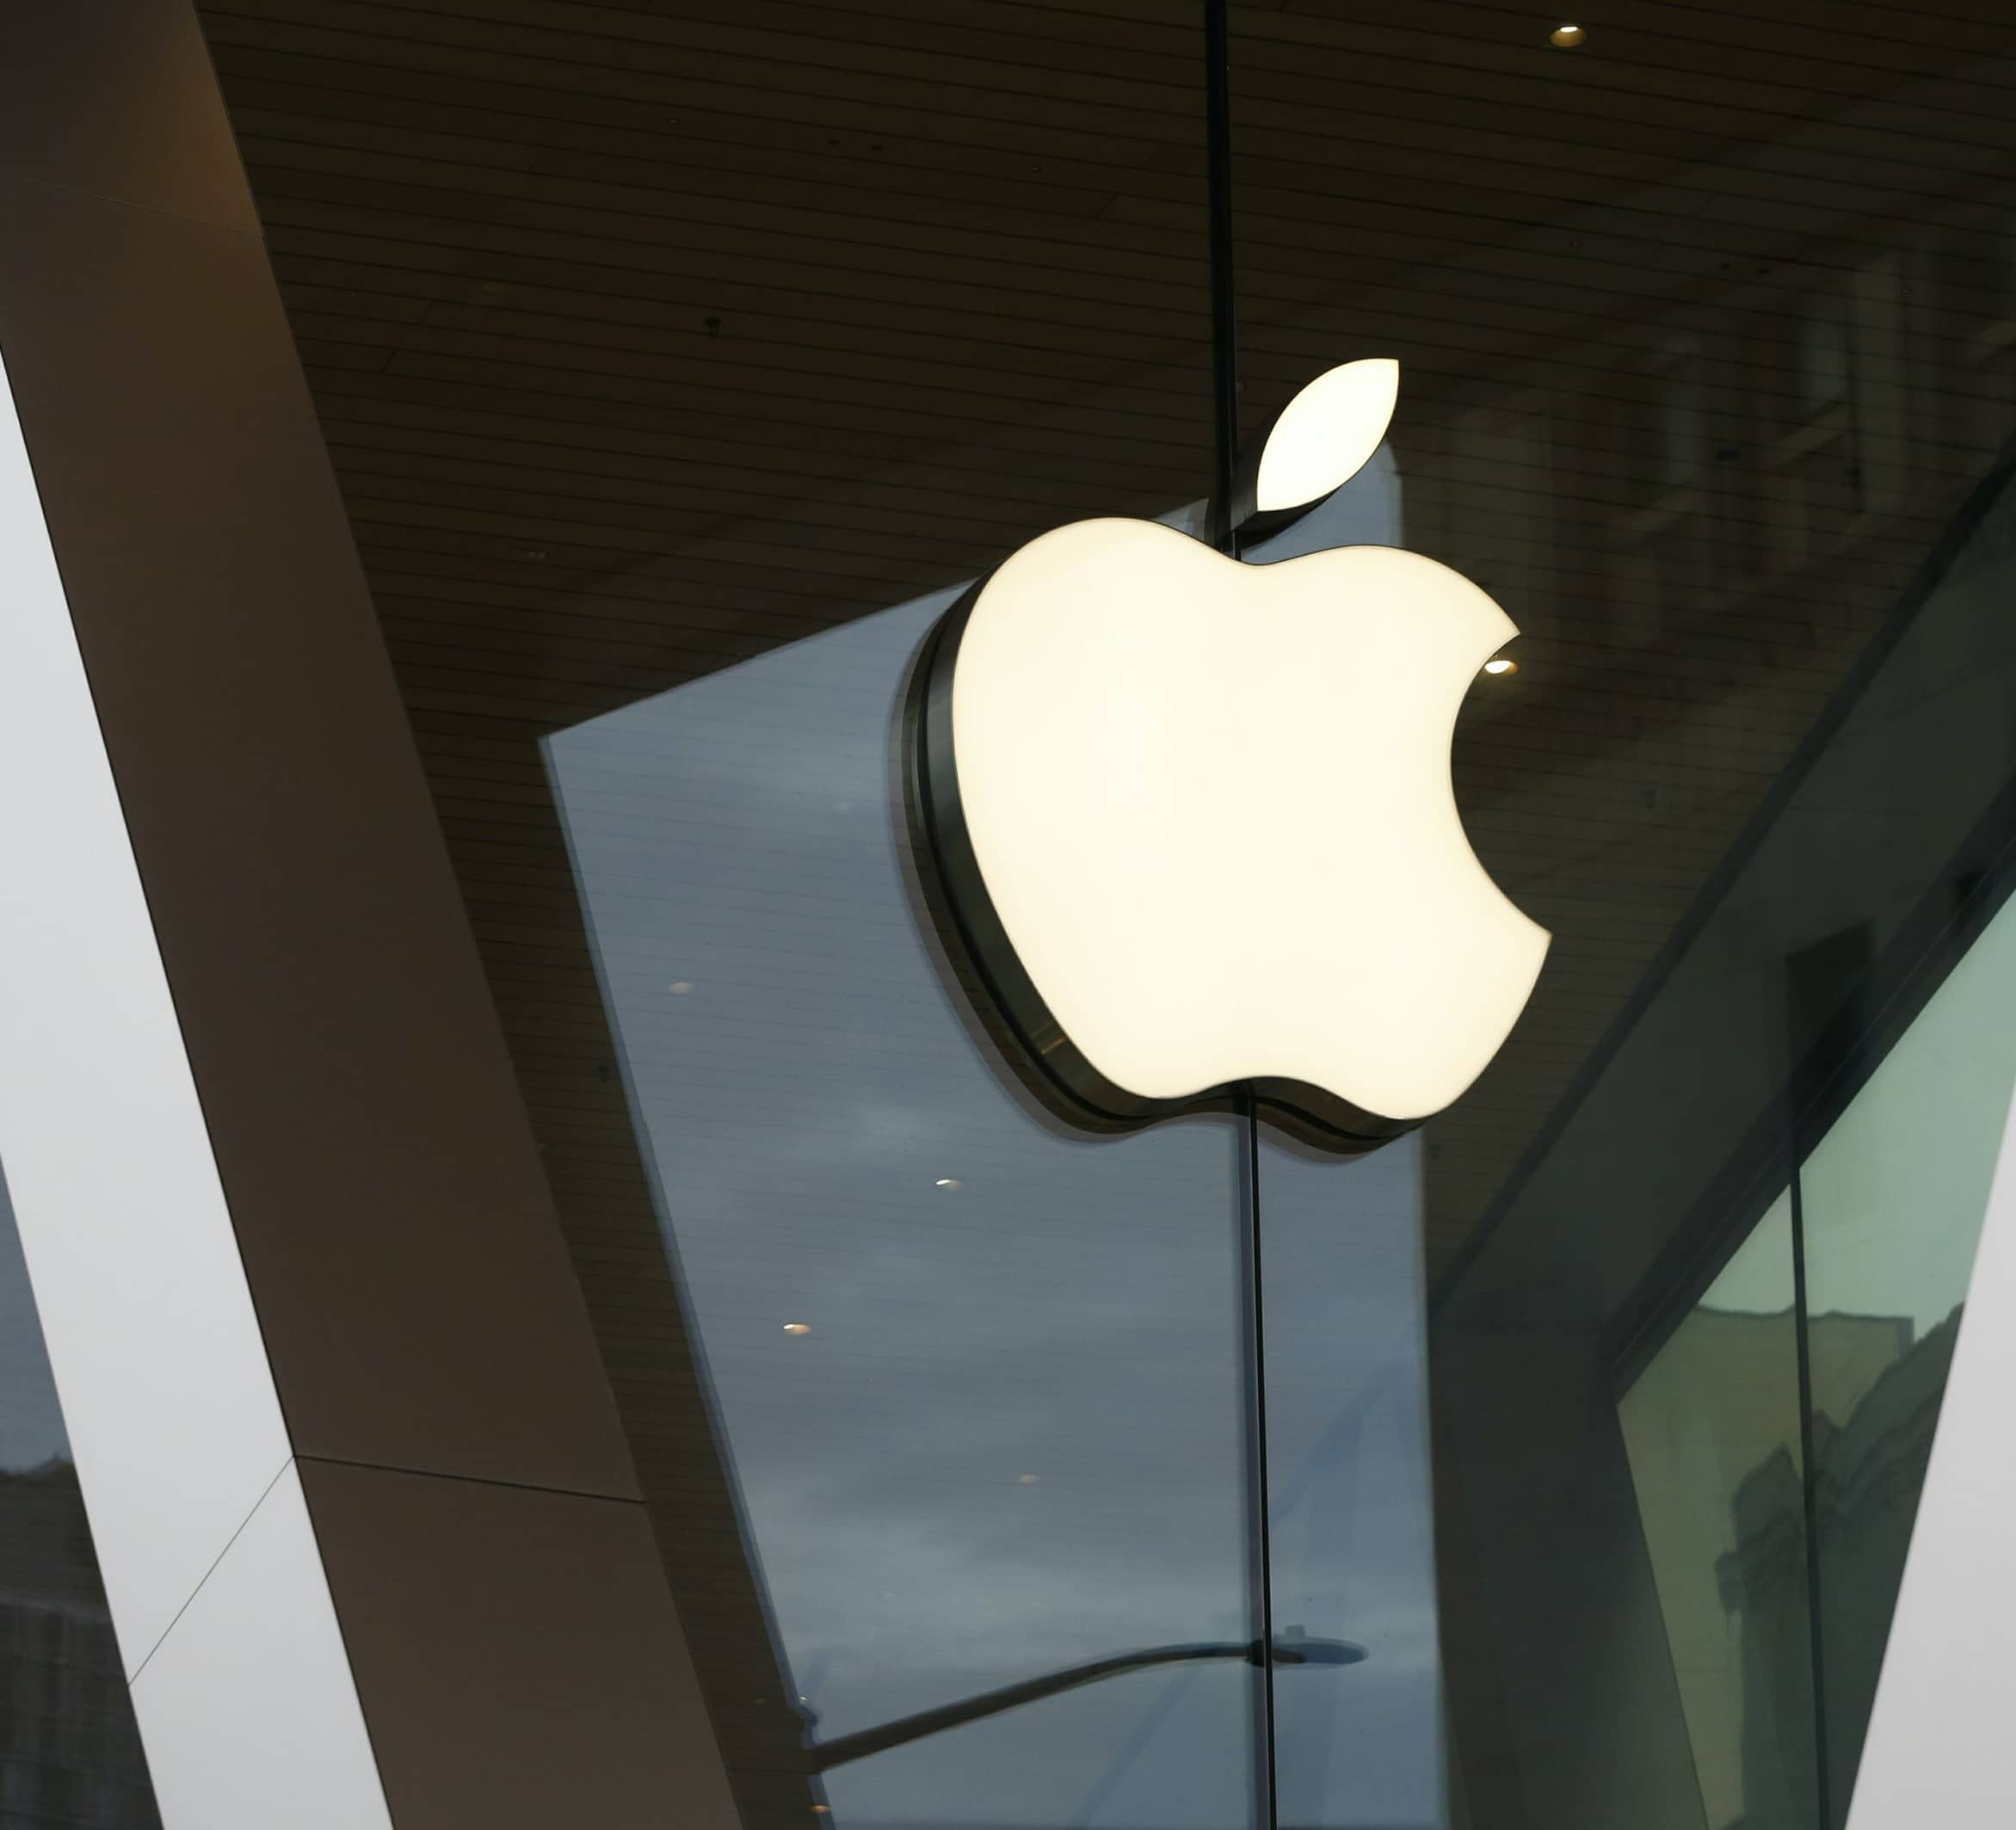 EU AUTHORITIES OPEN TWIN APPLE ANTITRUST INVESTIGATIONS